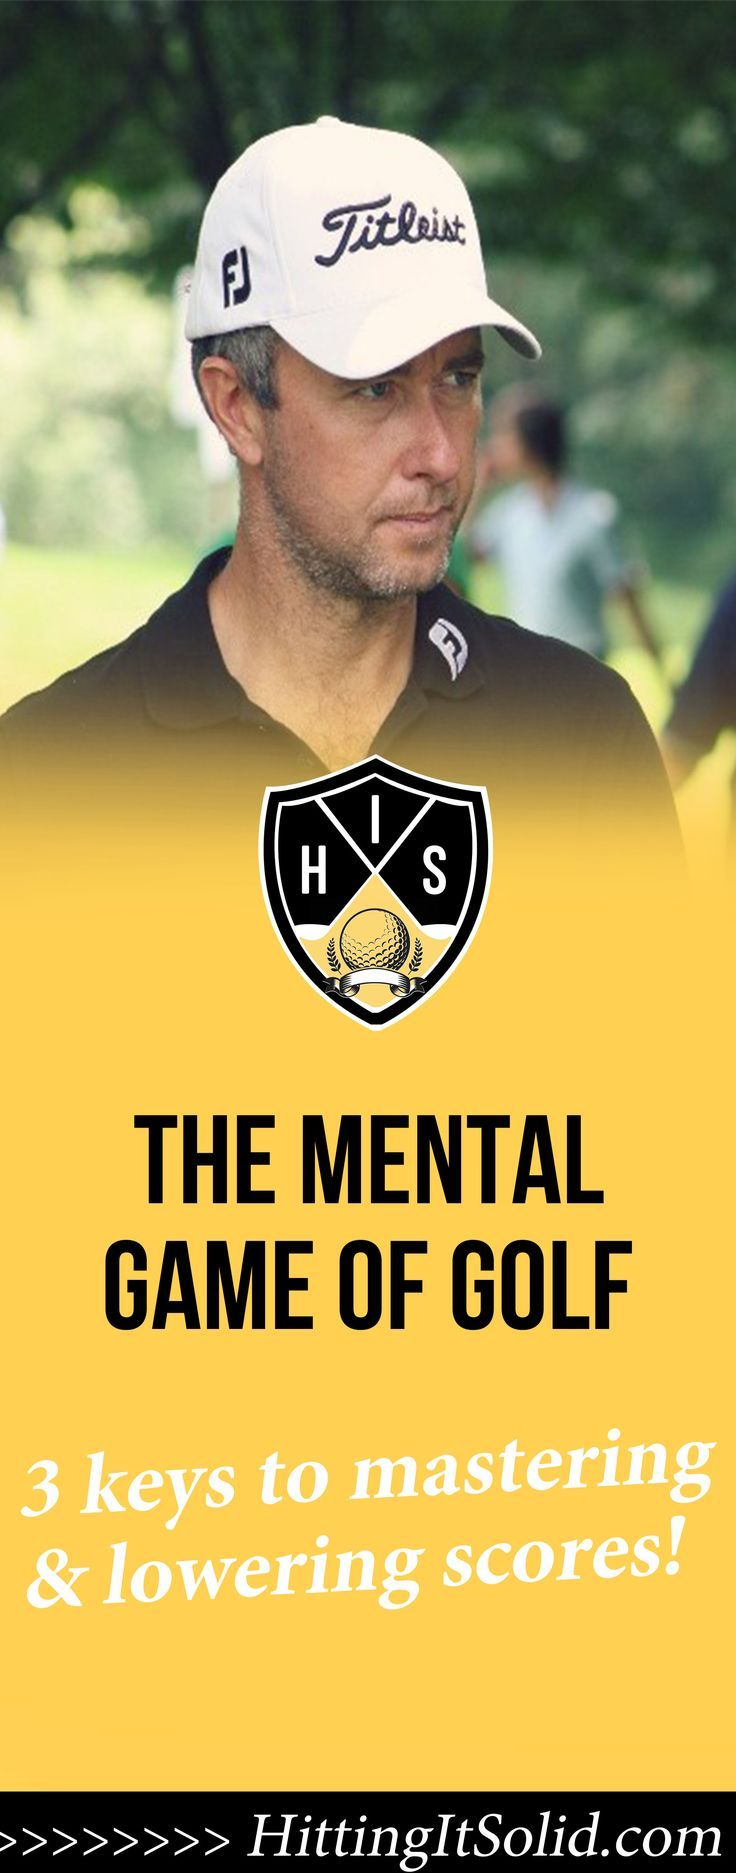 3 Keys to Mastering the Mental Game of Golf & Lowering